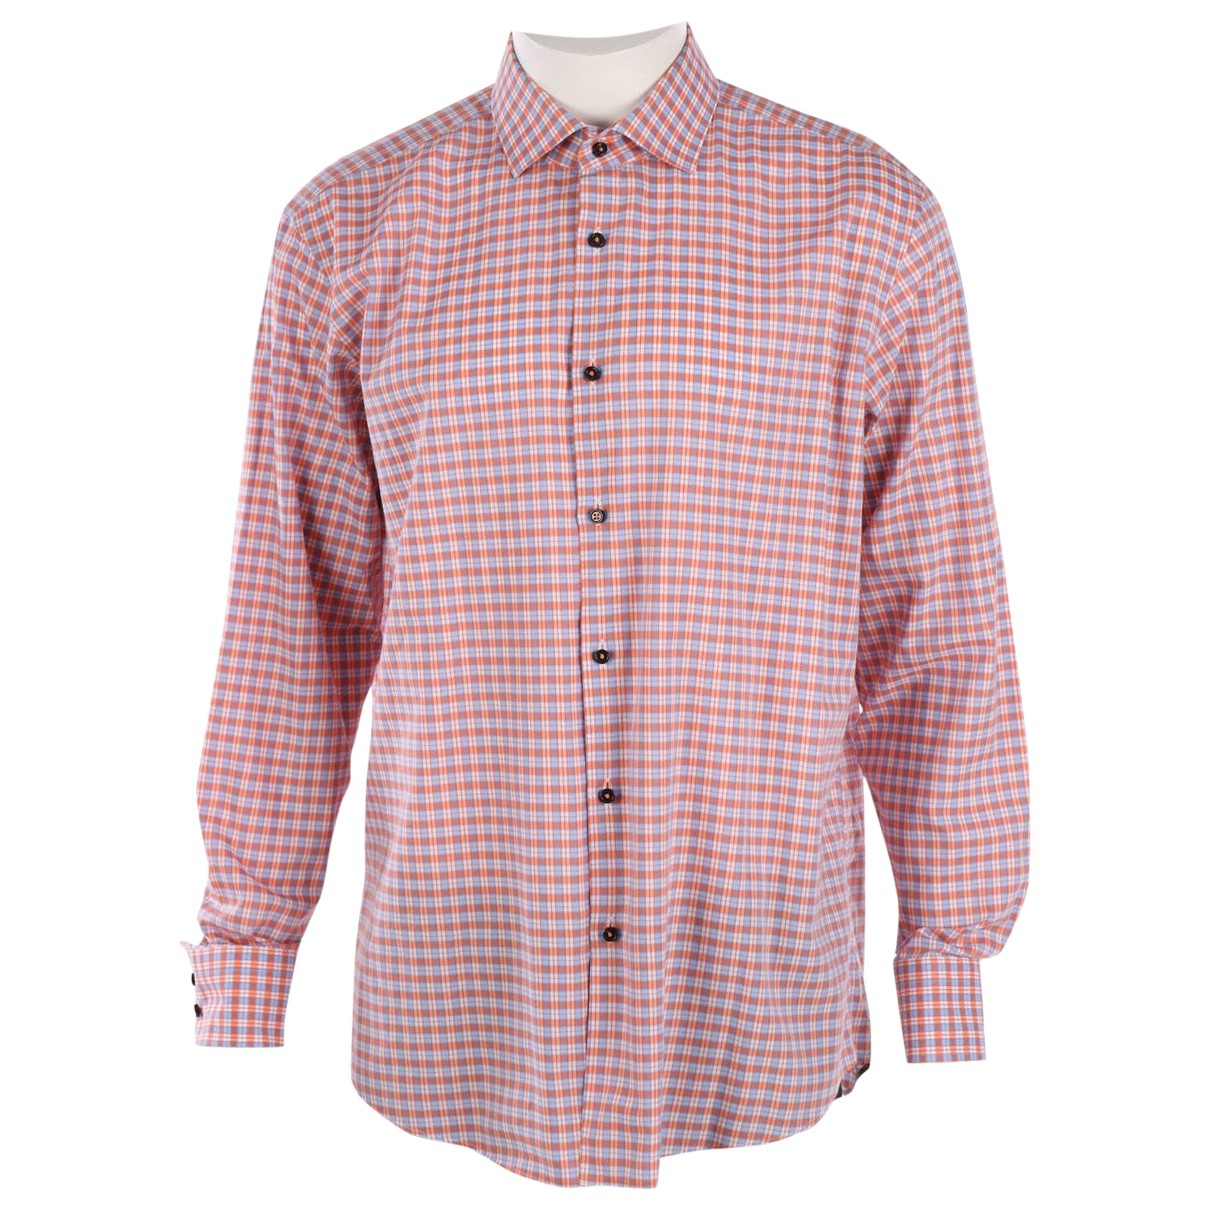 Boss \N Multicolour Cotton Shirts for Men 43 EU (tour de cou / collar)